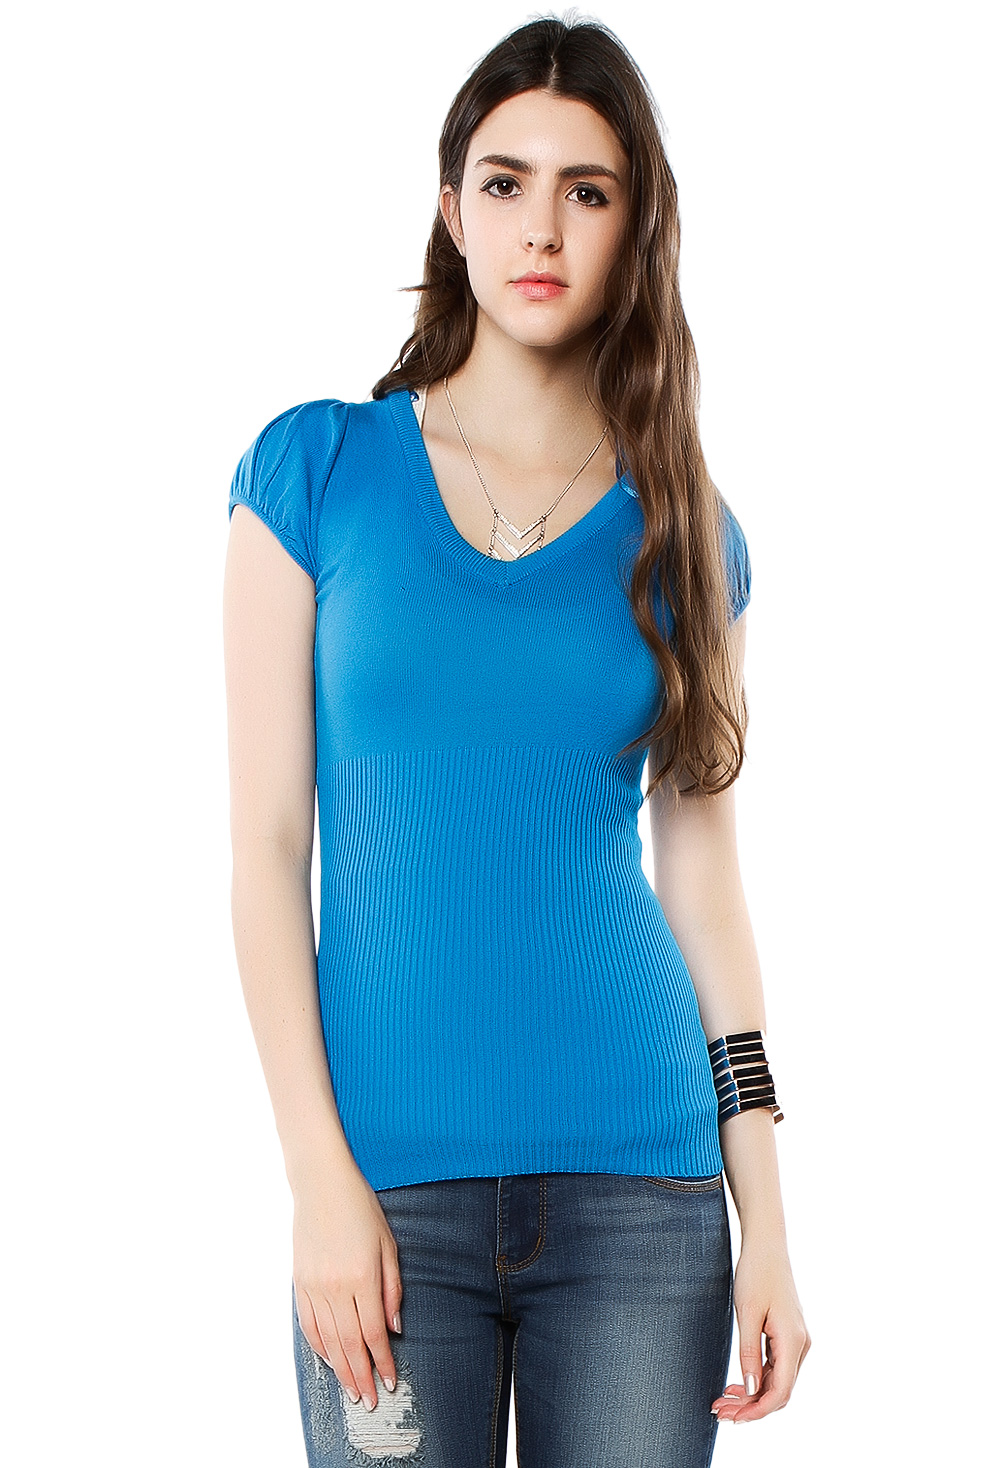 Buy KUSMOO Casual T Shirt Tops for Women Short Sleeve Basic Tees Loose Blouse (Black, Small) and other Knits & Tees at eacvuazs.ga Our wide selection is elegible for free shipping and free returns.